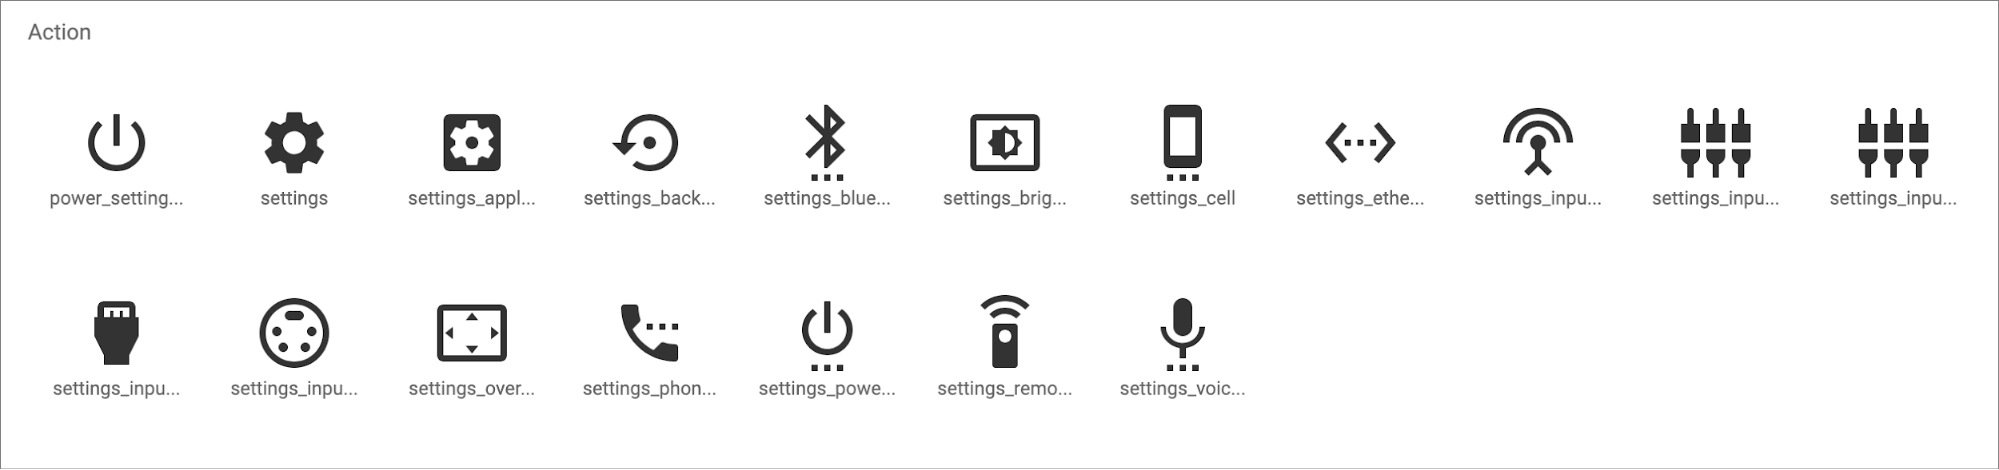 Google's Material Design icons